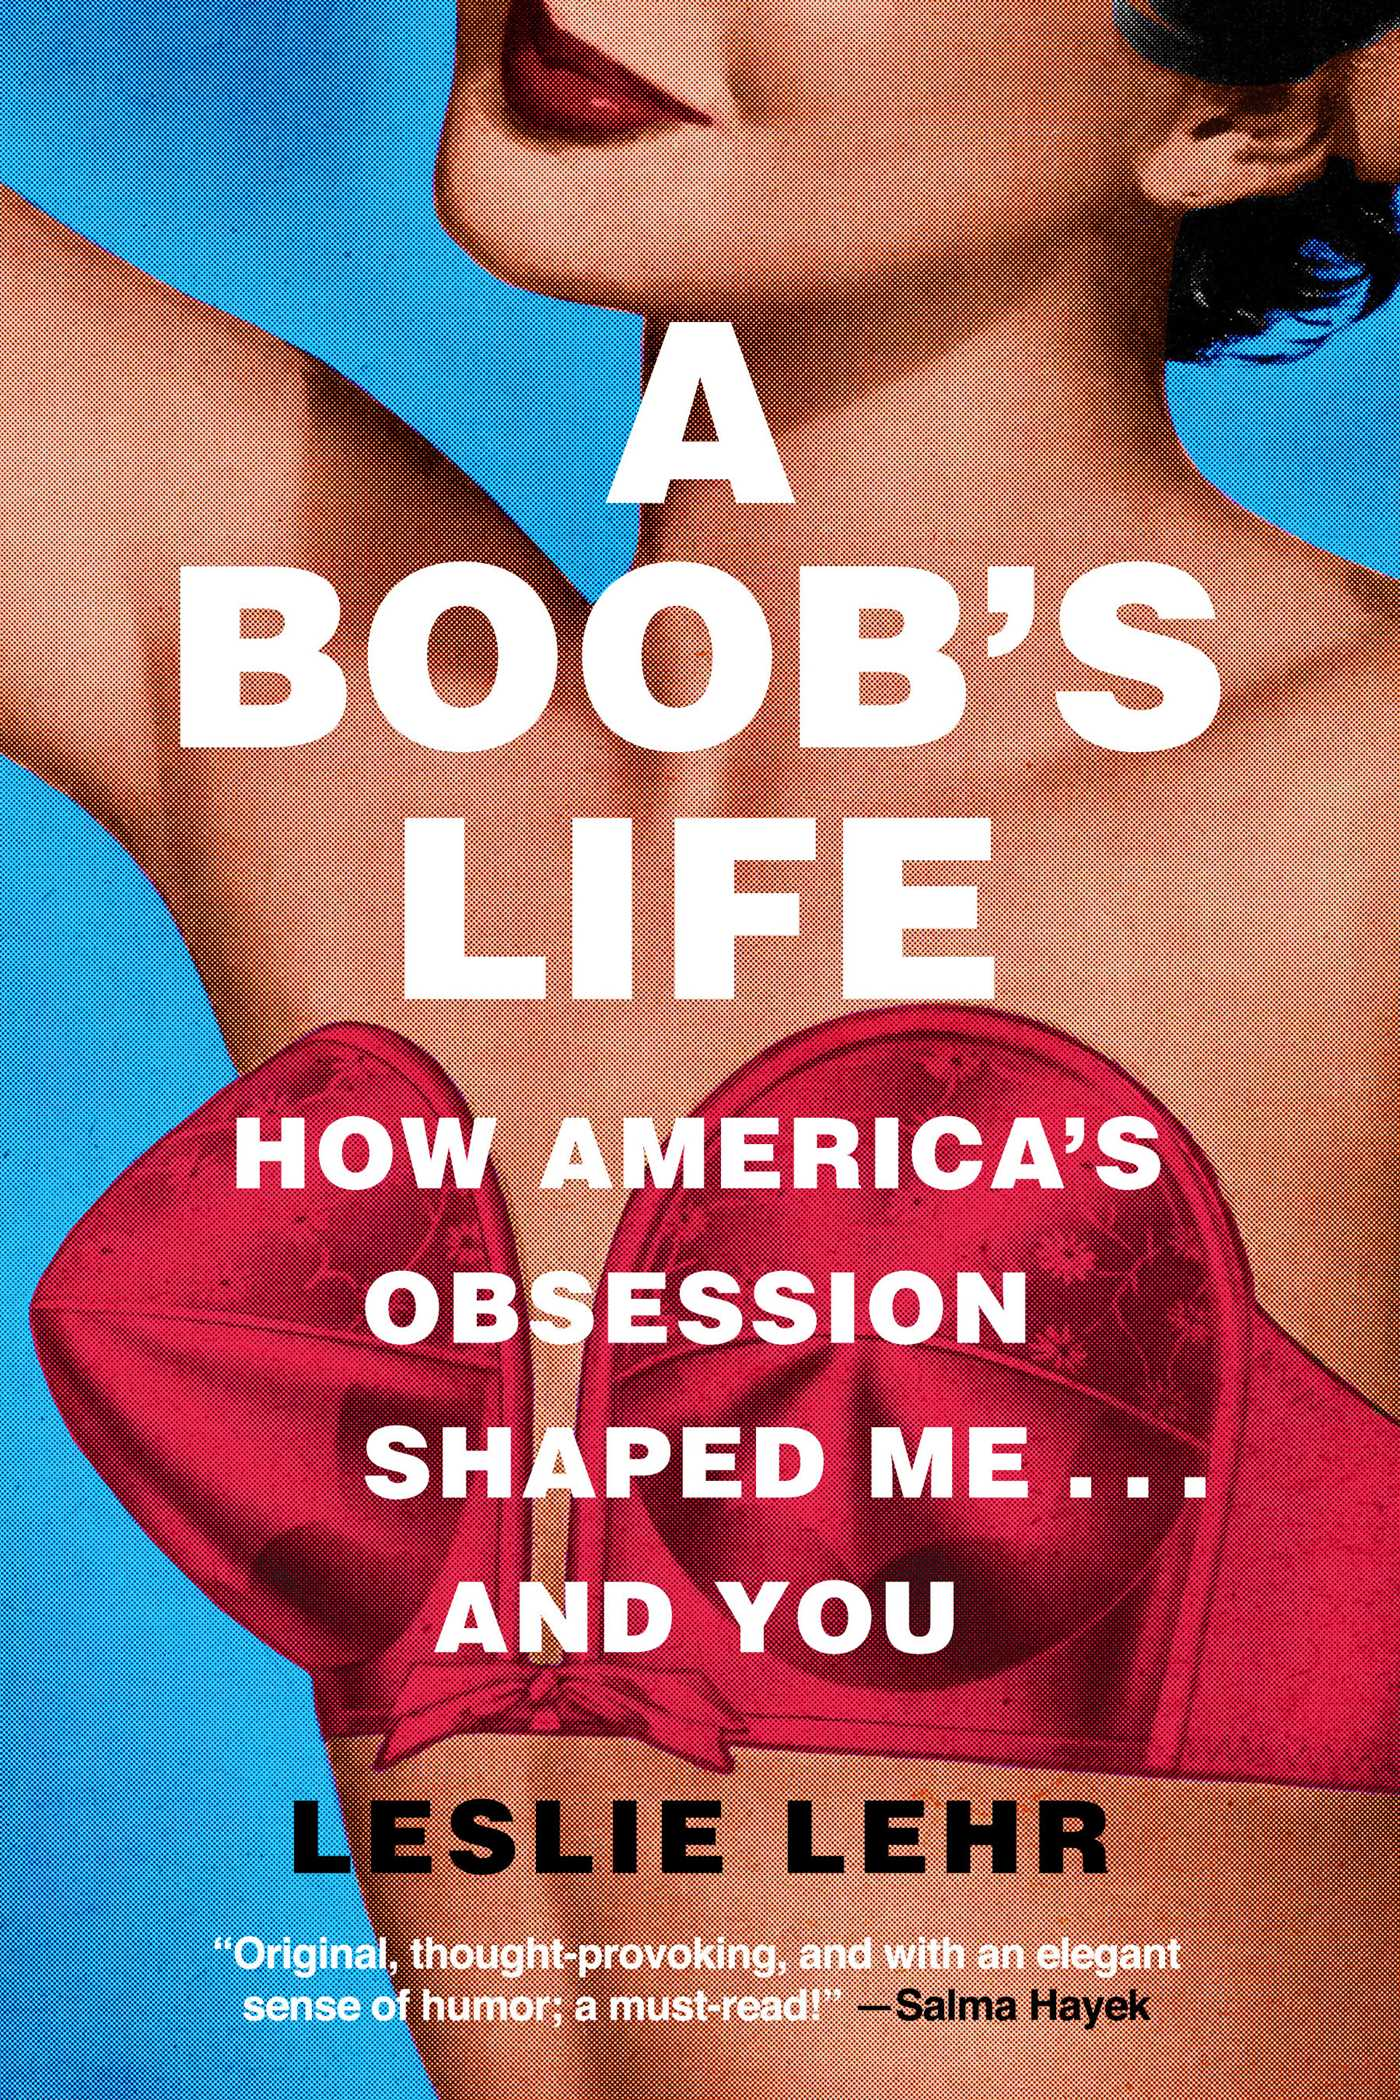 A Boob's Life: How America's Obsession Shaped Me—and You